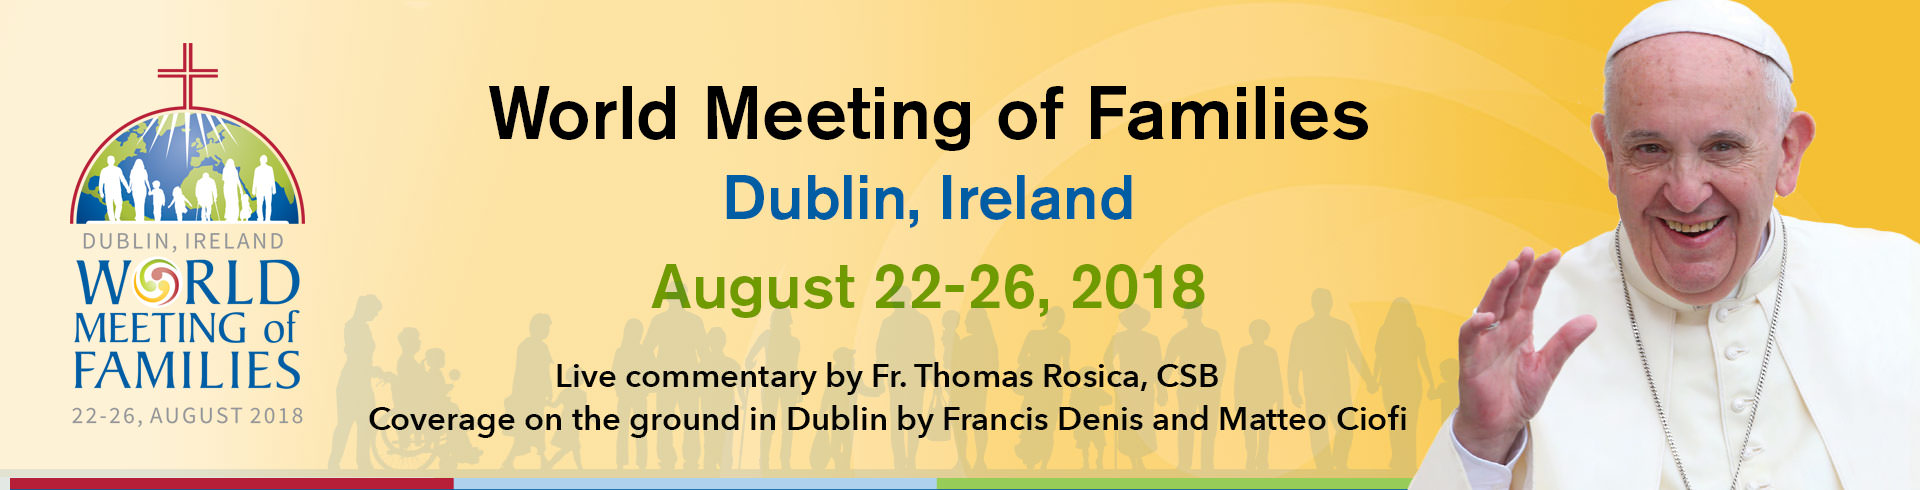 World Meeting of Family 2018 - Dublin